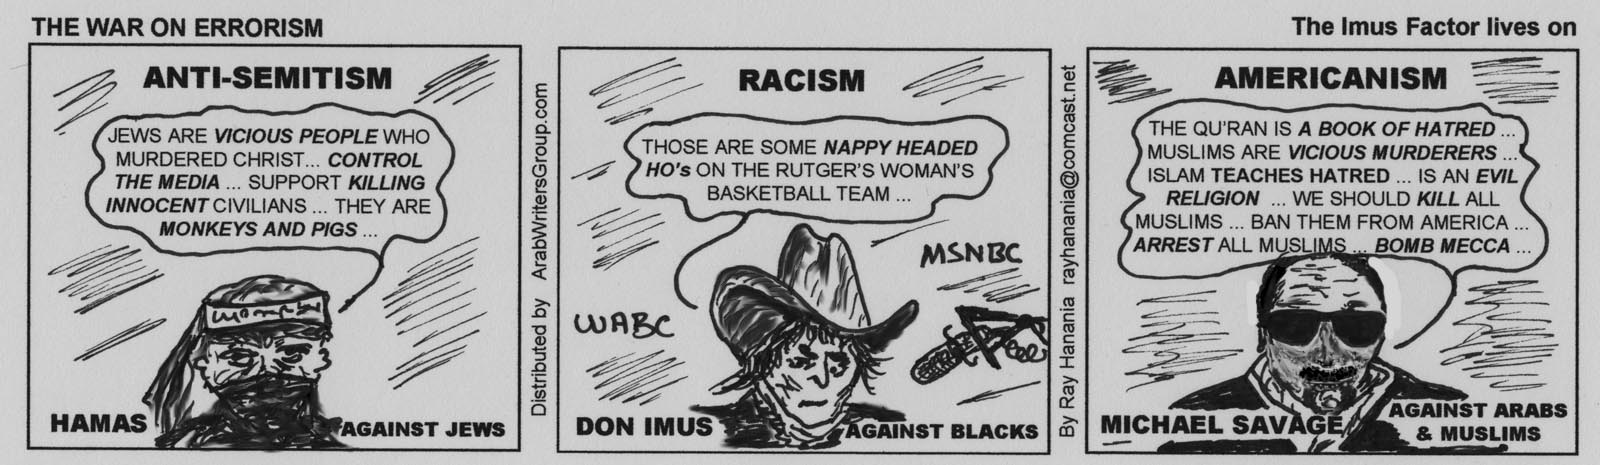 CARTOON: Anti-Semitism, to racism to Americanism, For Immediate Release 11-18-07